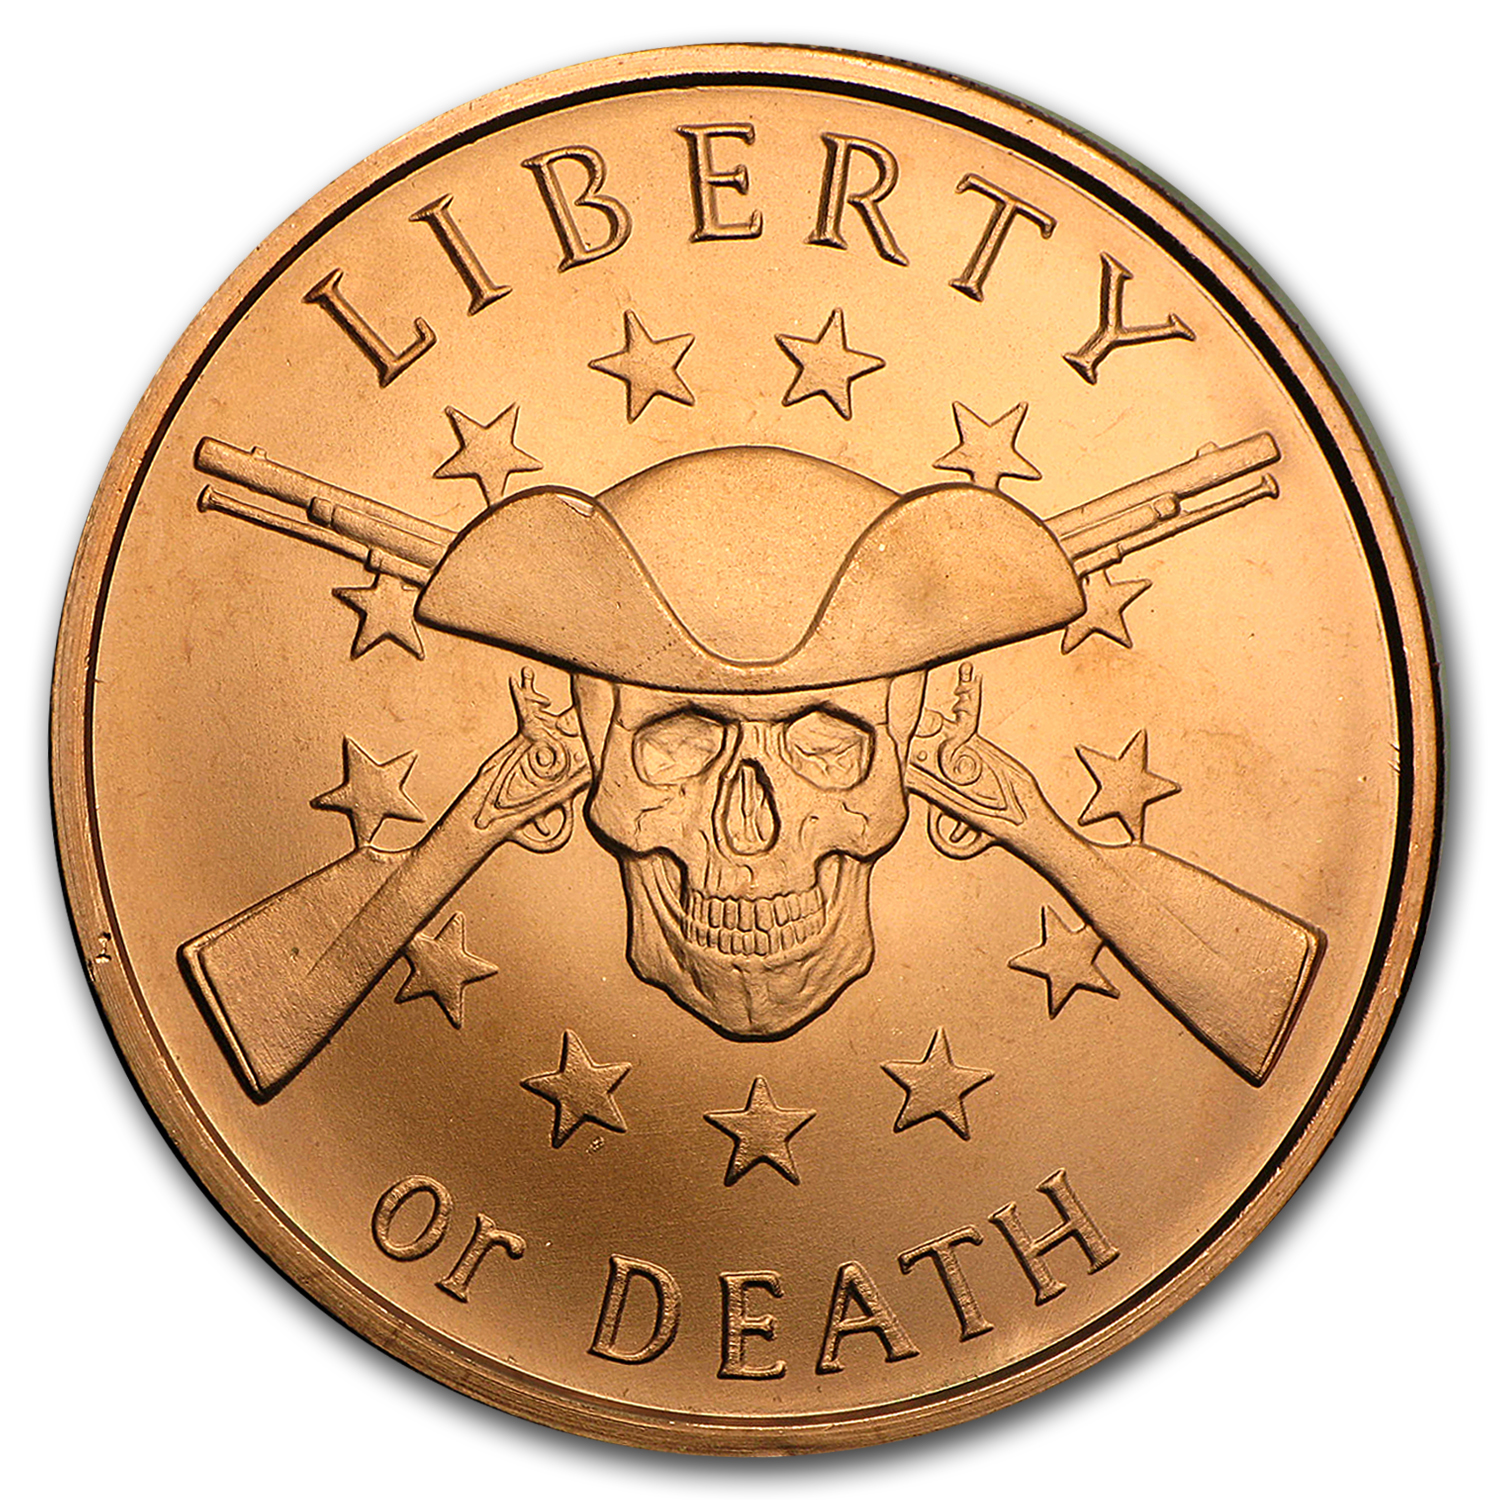 2017 1 oz Copper Round - Liberty or Death